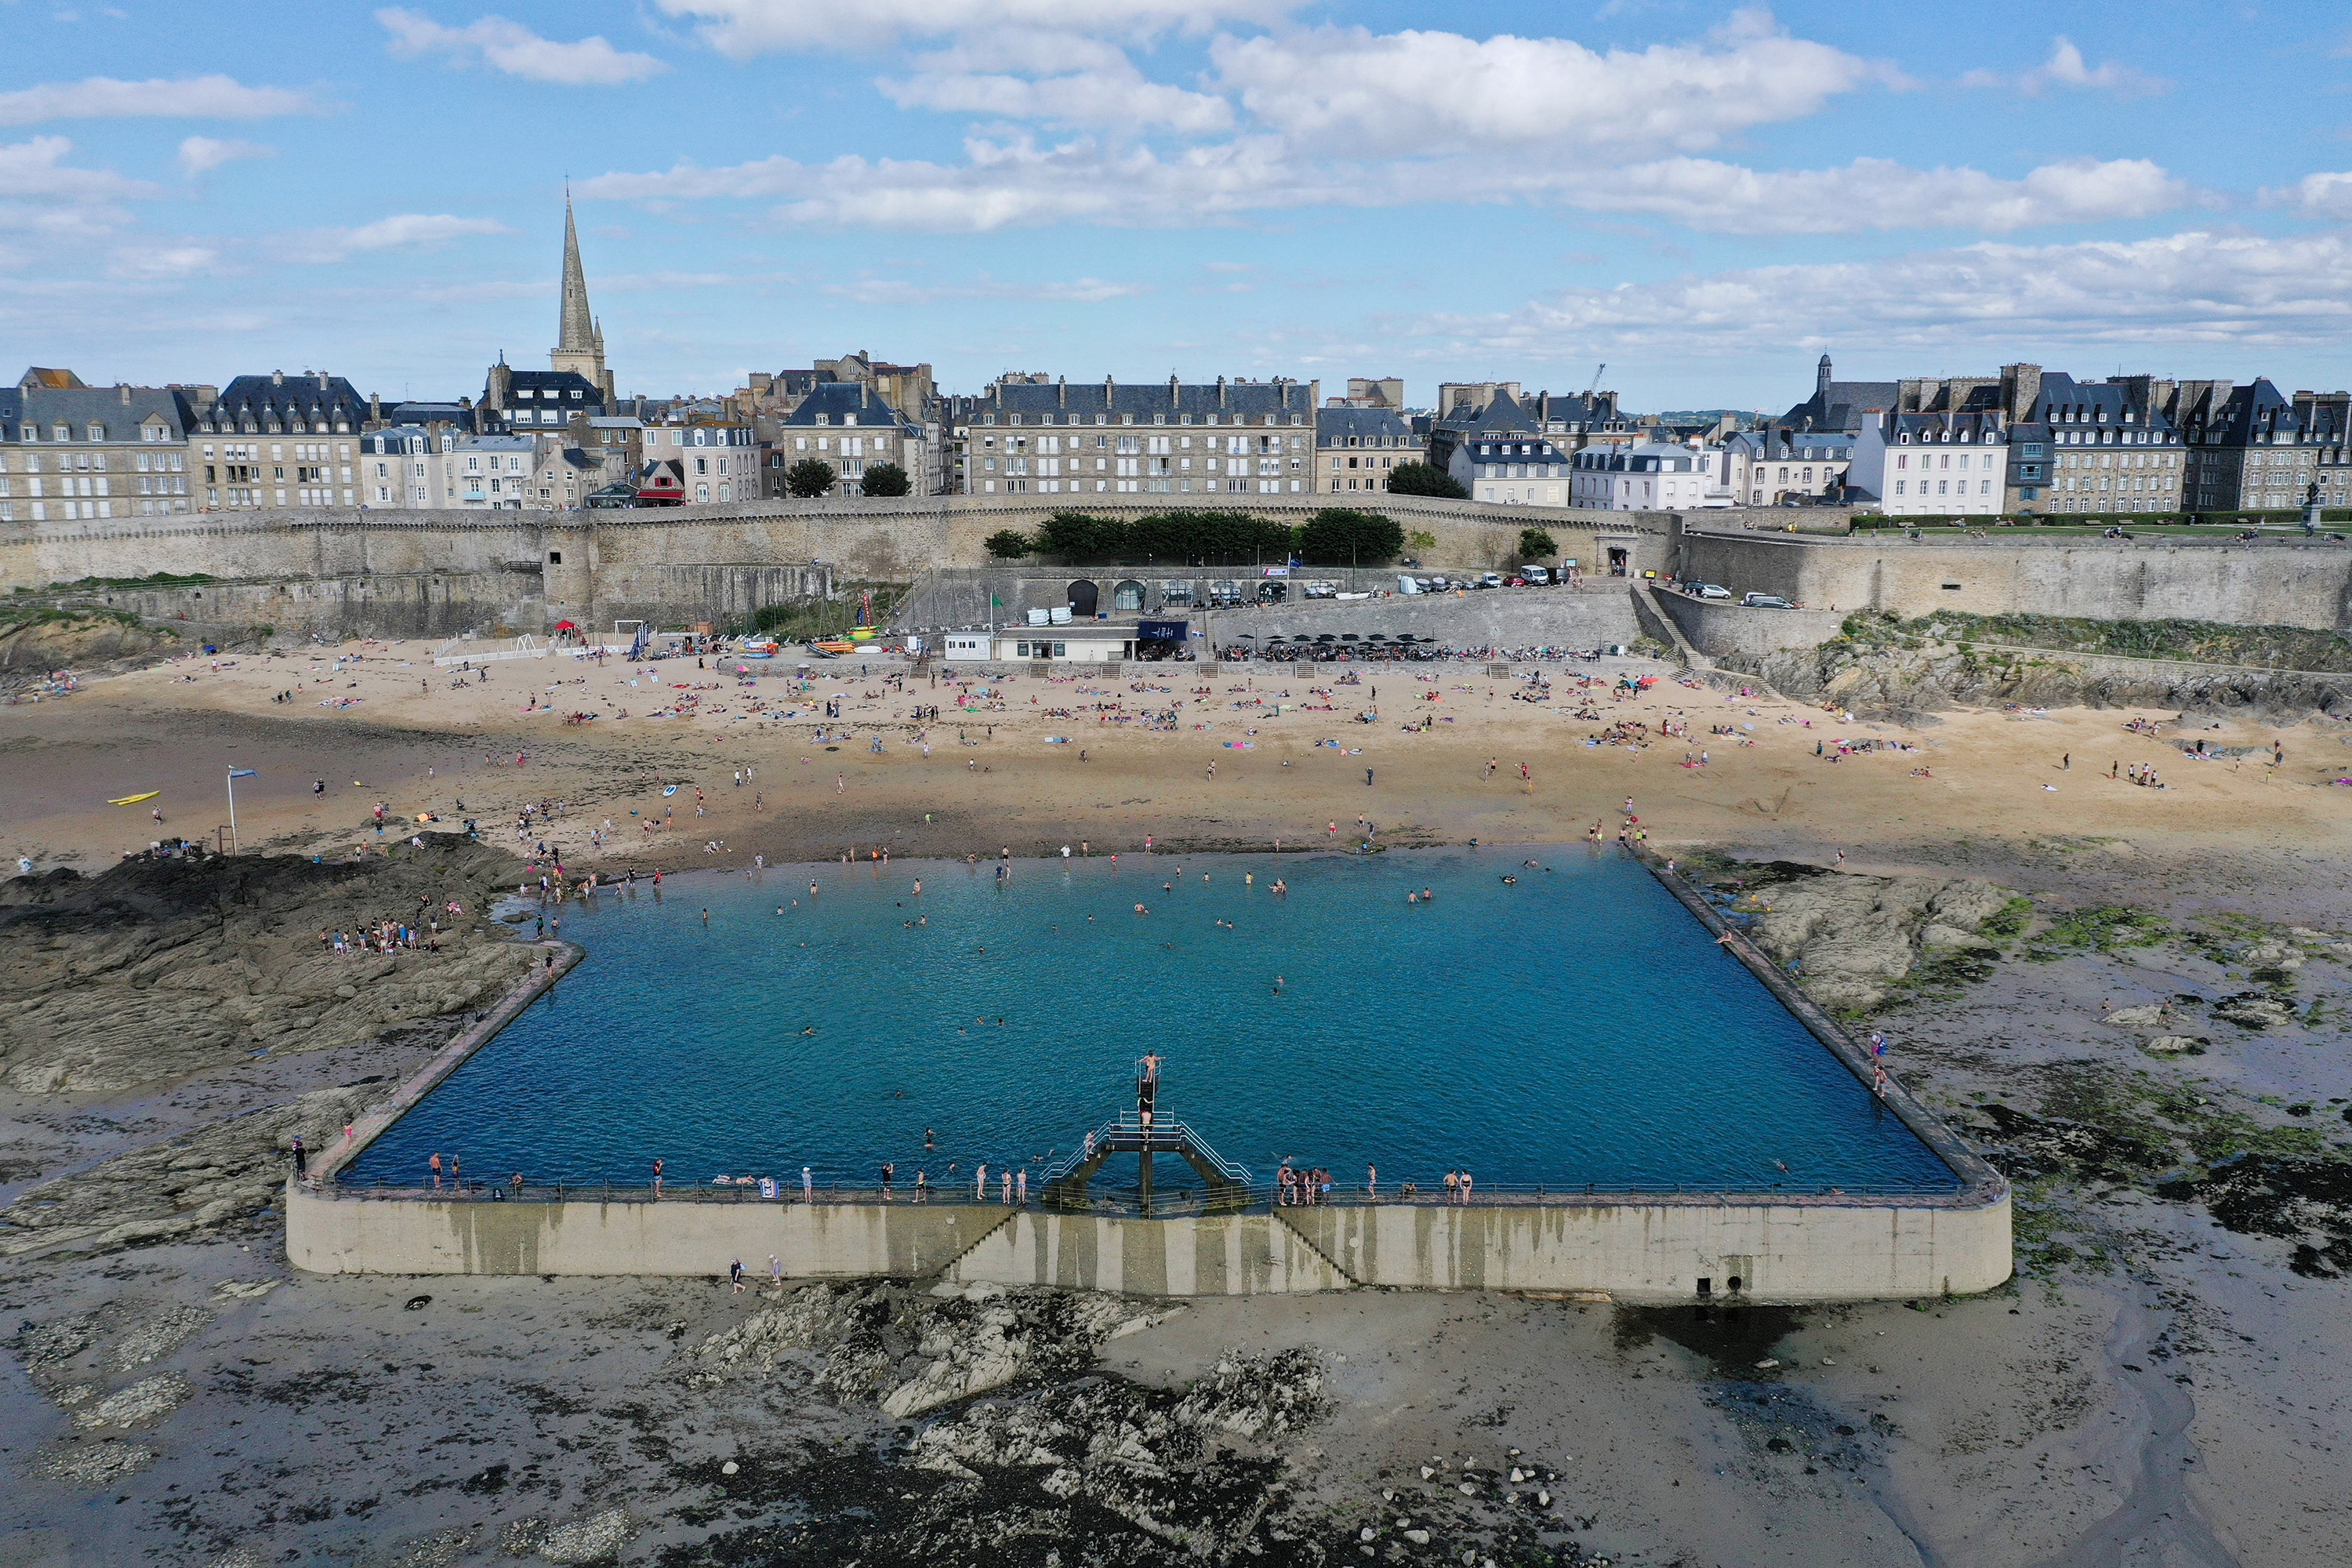 An aerial photograph taken on July 9, 2020 shows people enjoying a seawater pool on the beach of Saint-Malo, western France.